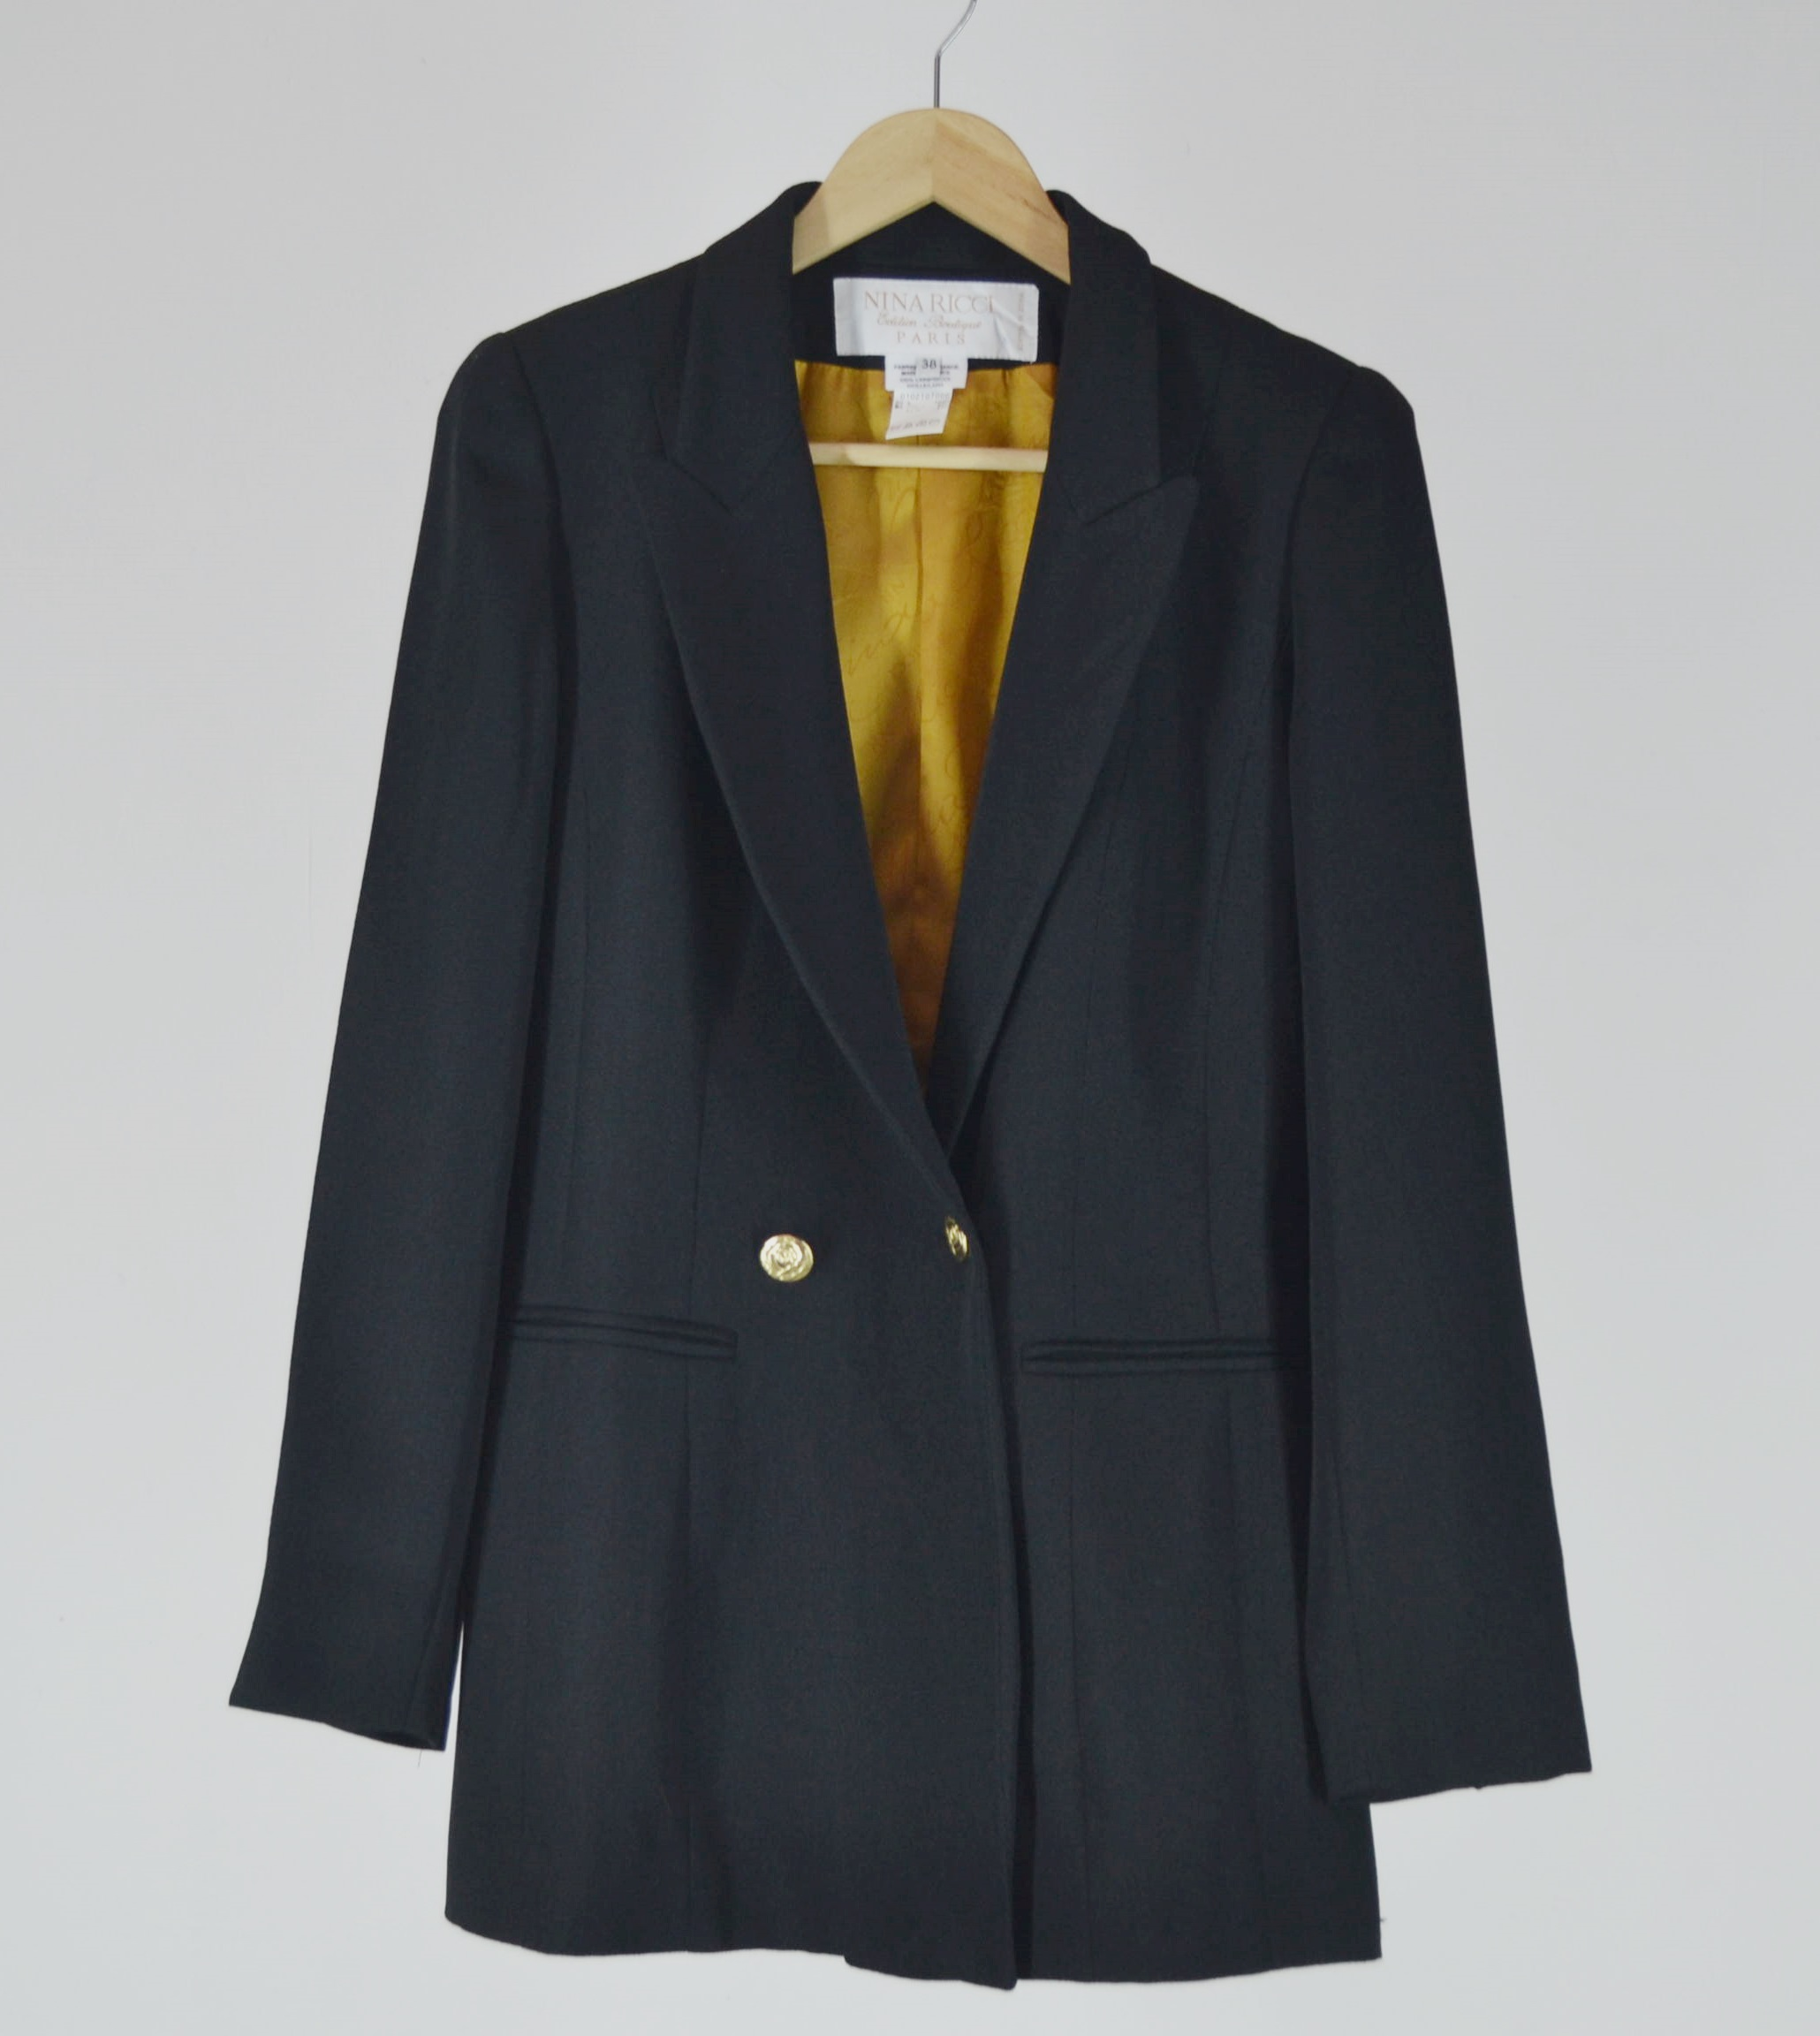 Boutique Made Paris Nina Ricci Paris Boutique Edition Wool Blazer Made In France